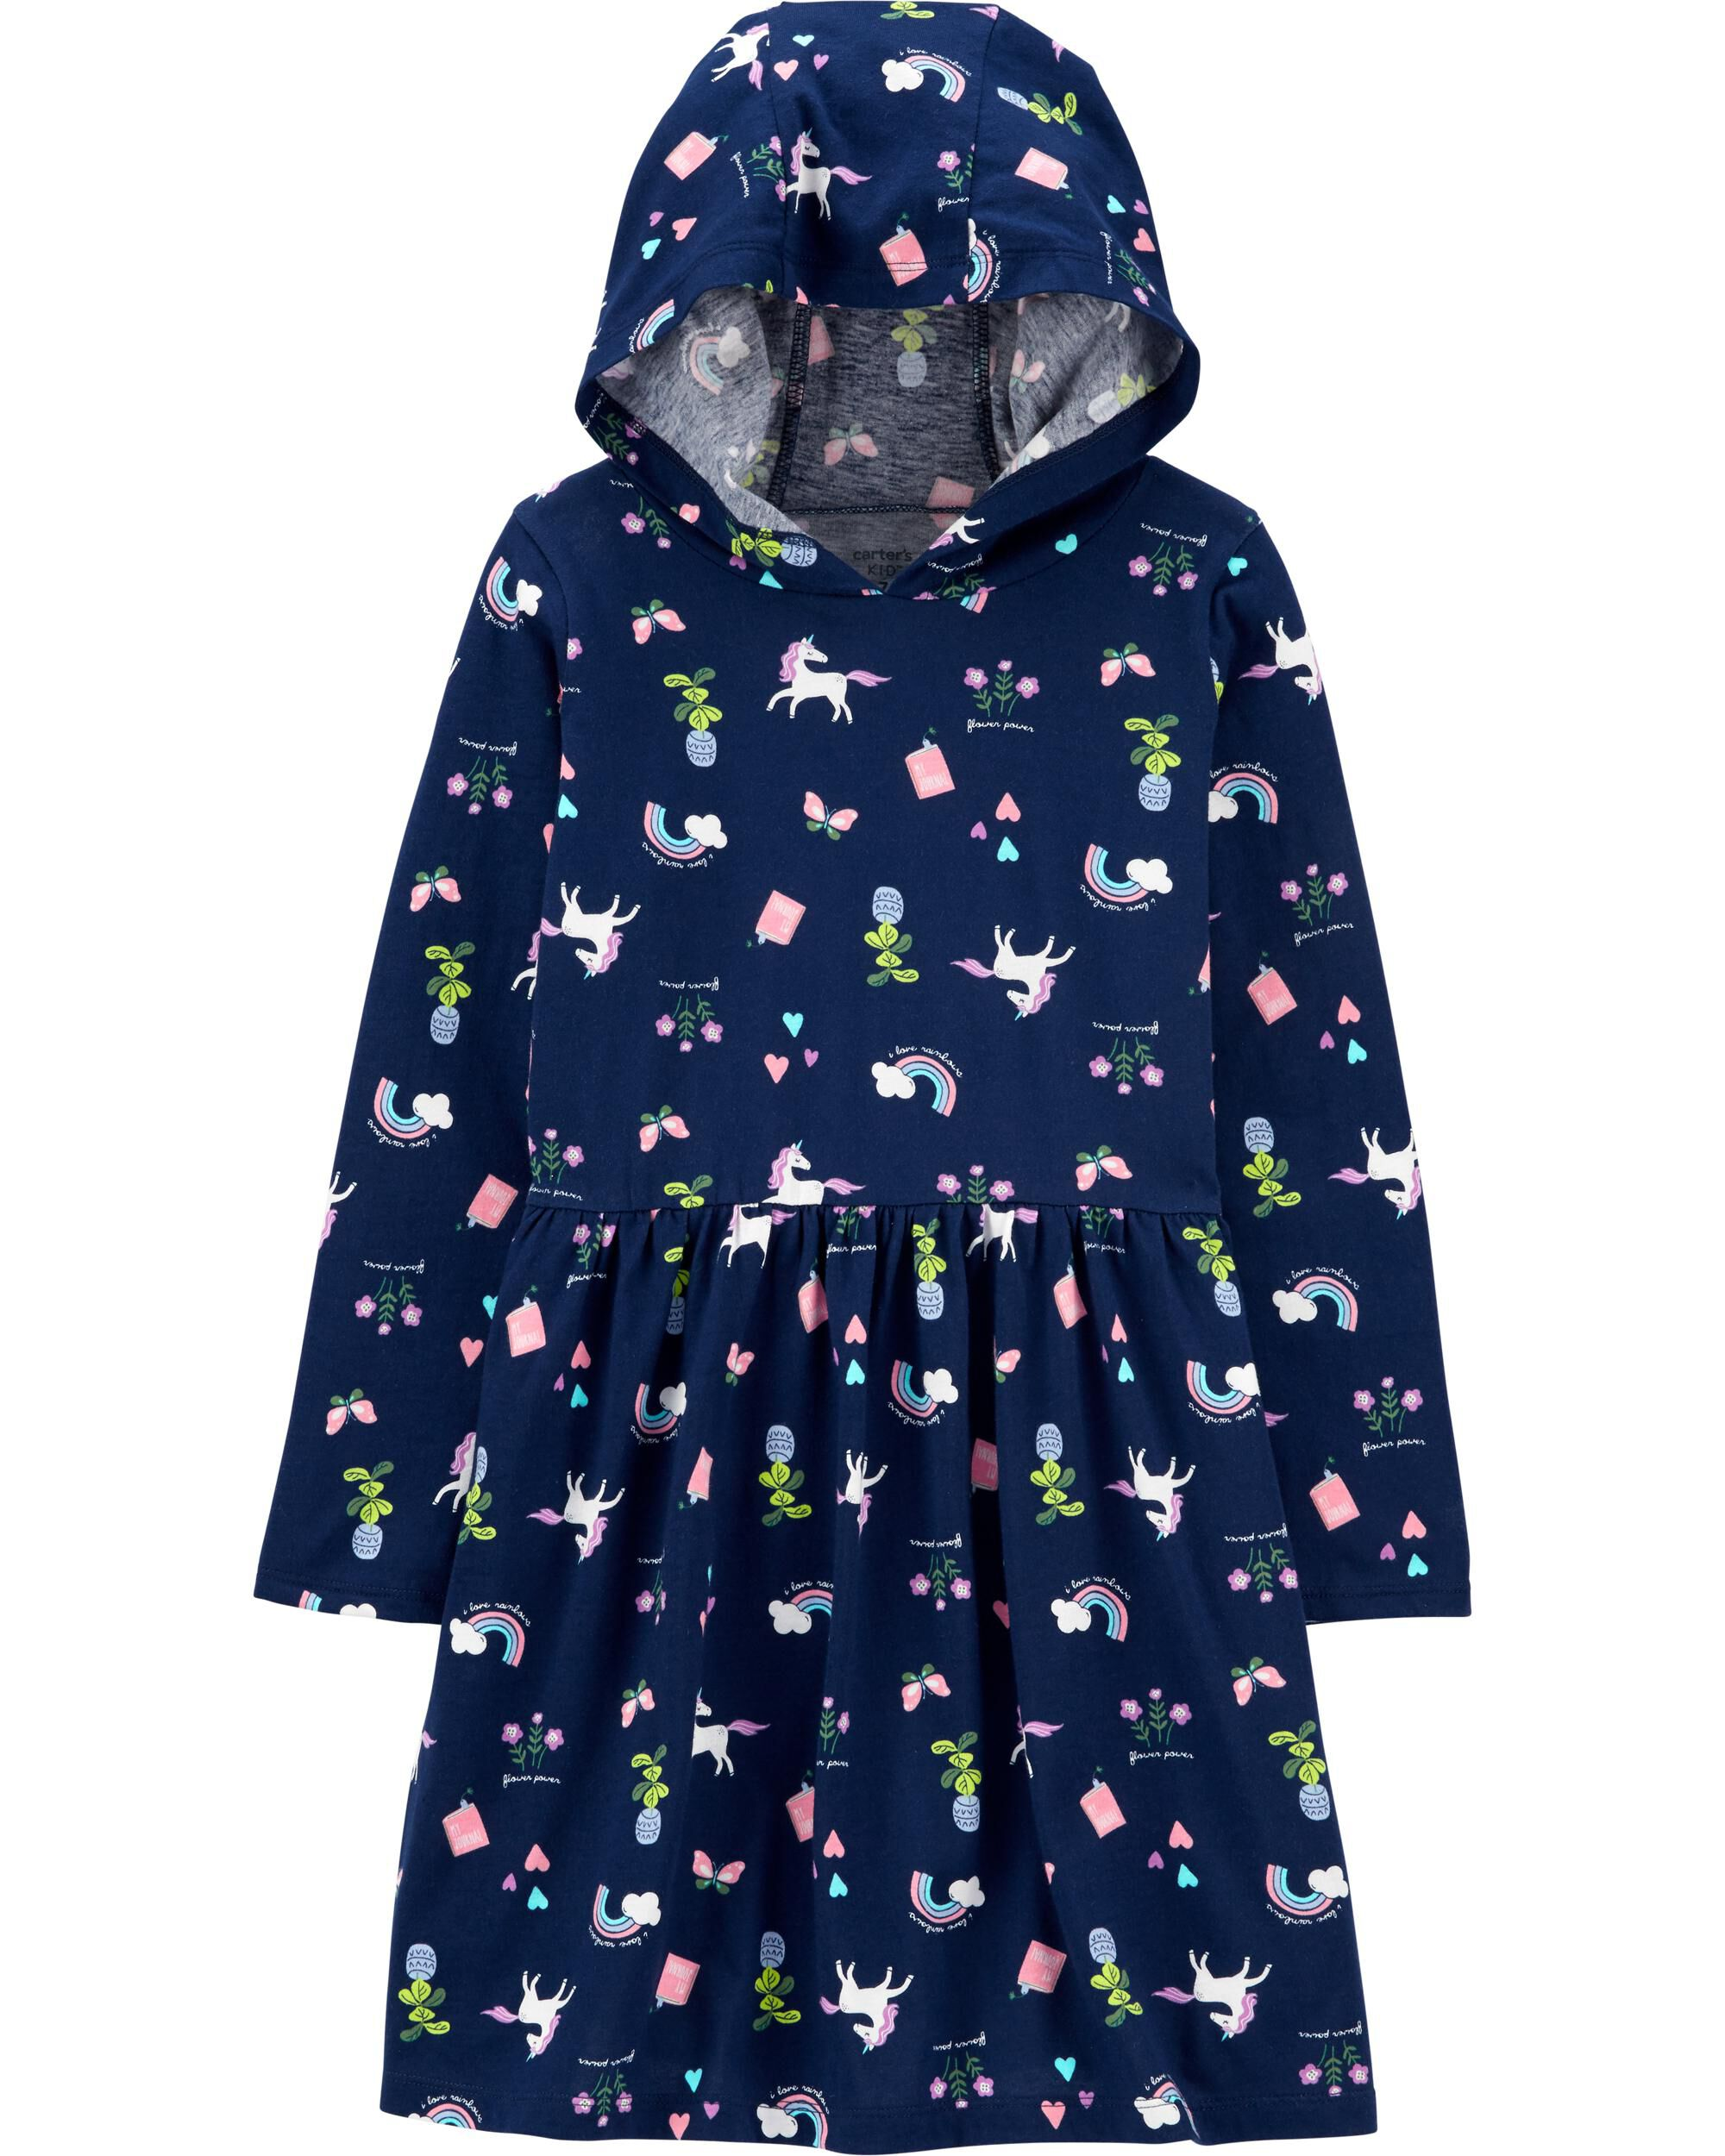 Unicorn Hooded Jersey Dress